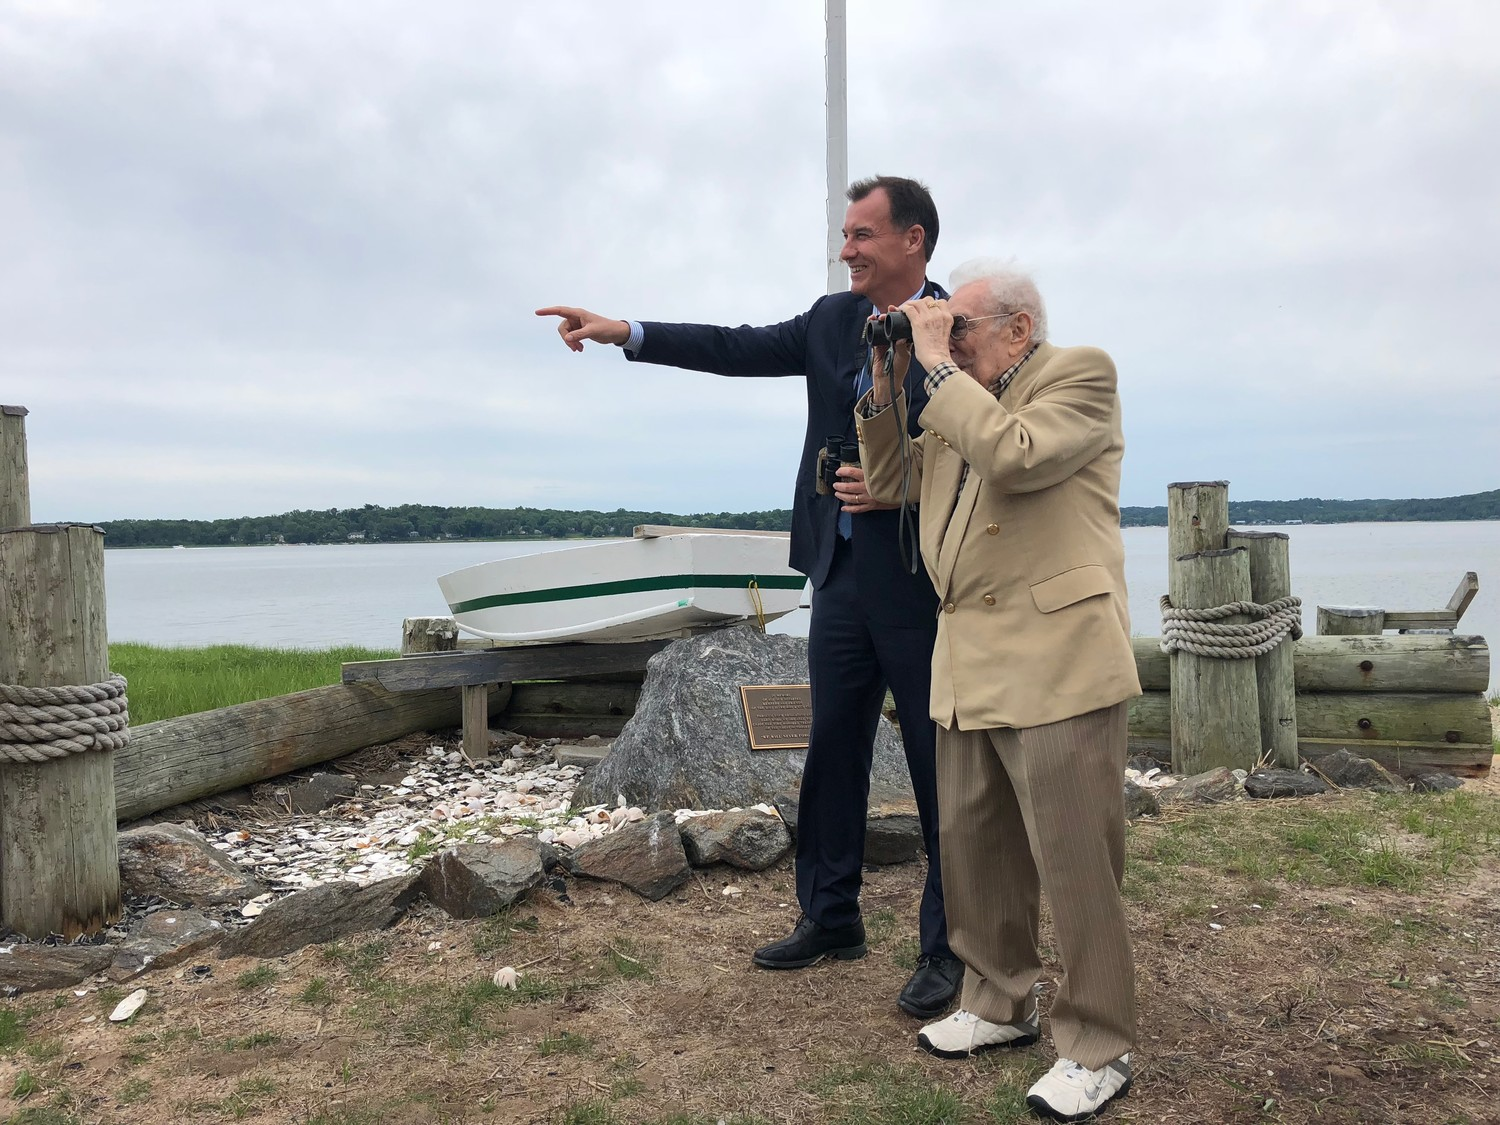 U.S. Rep. Tom Suozzi and former U.S. Rep. Lester Wolff observed ospreys flying around the Oyster Bay National Wildlife Refuge.